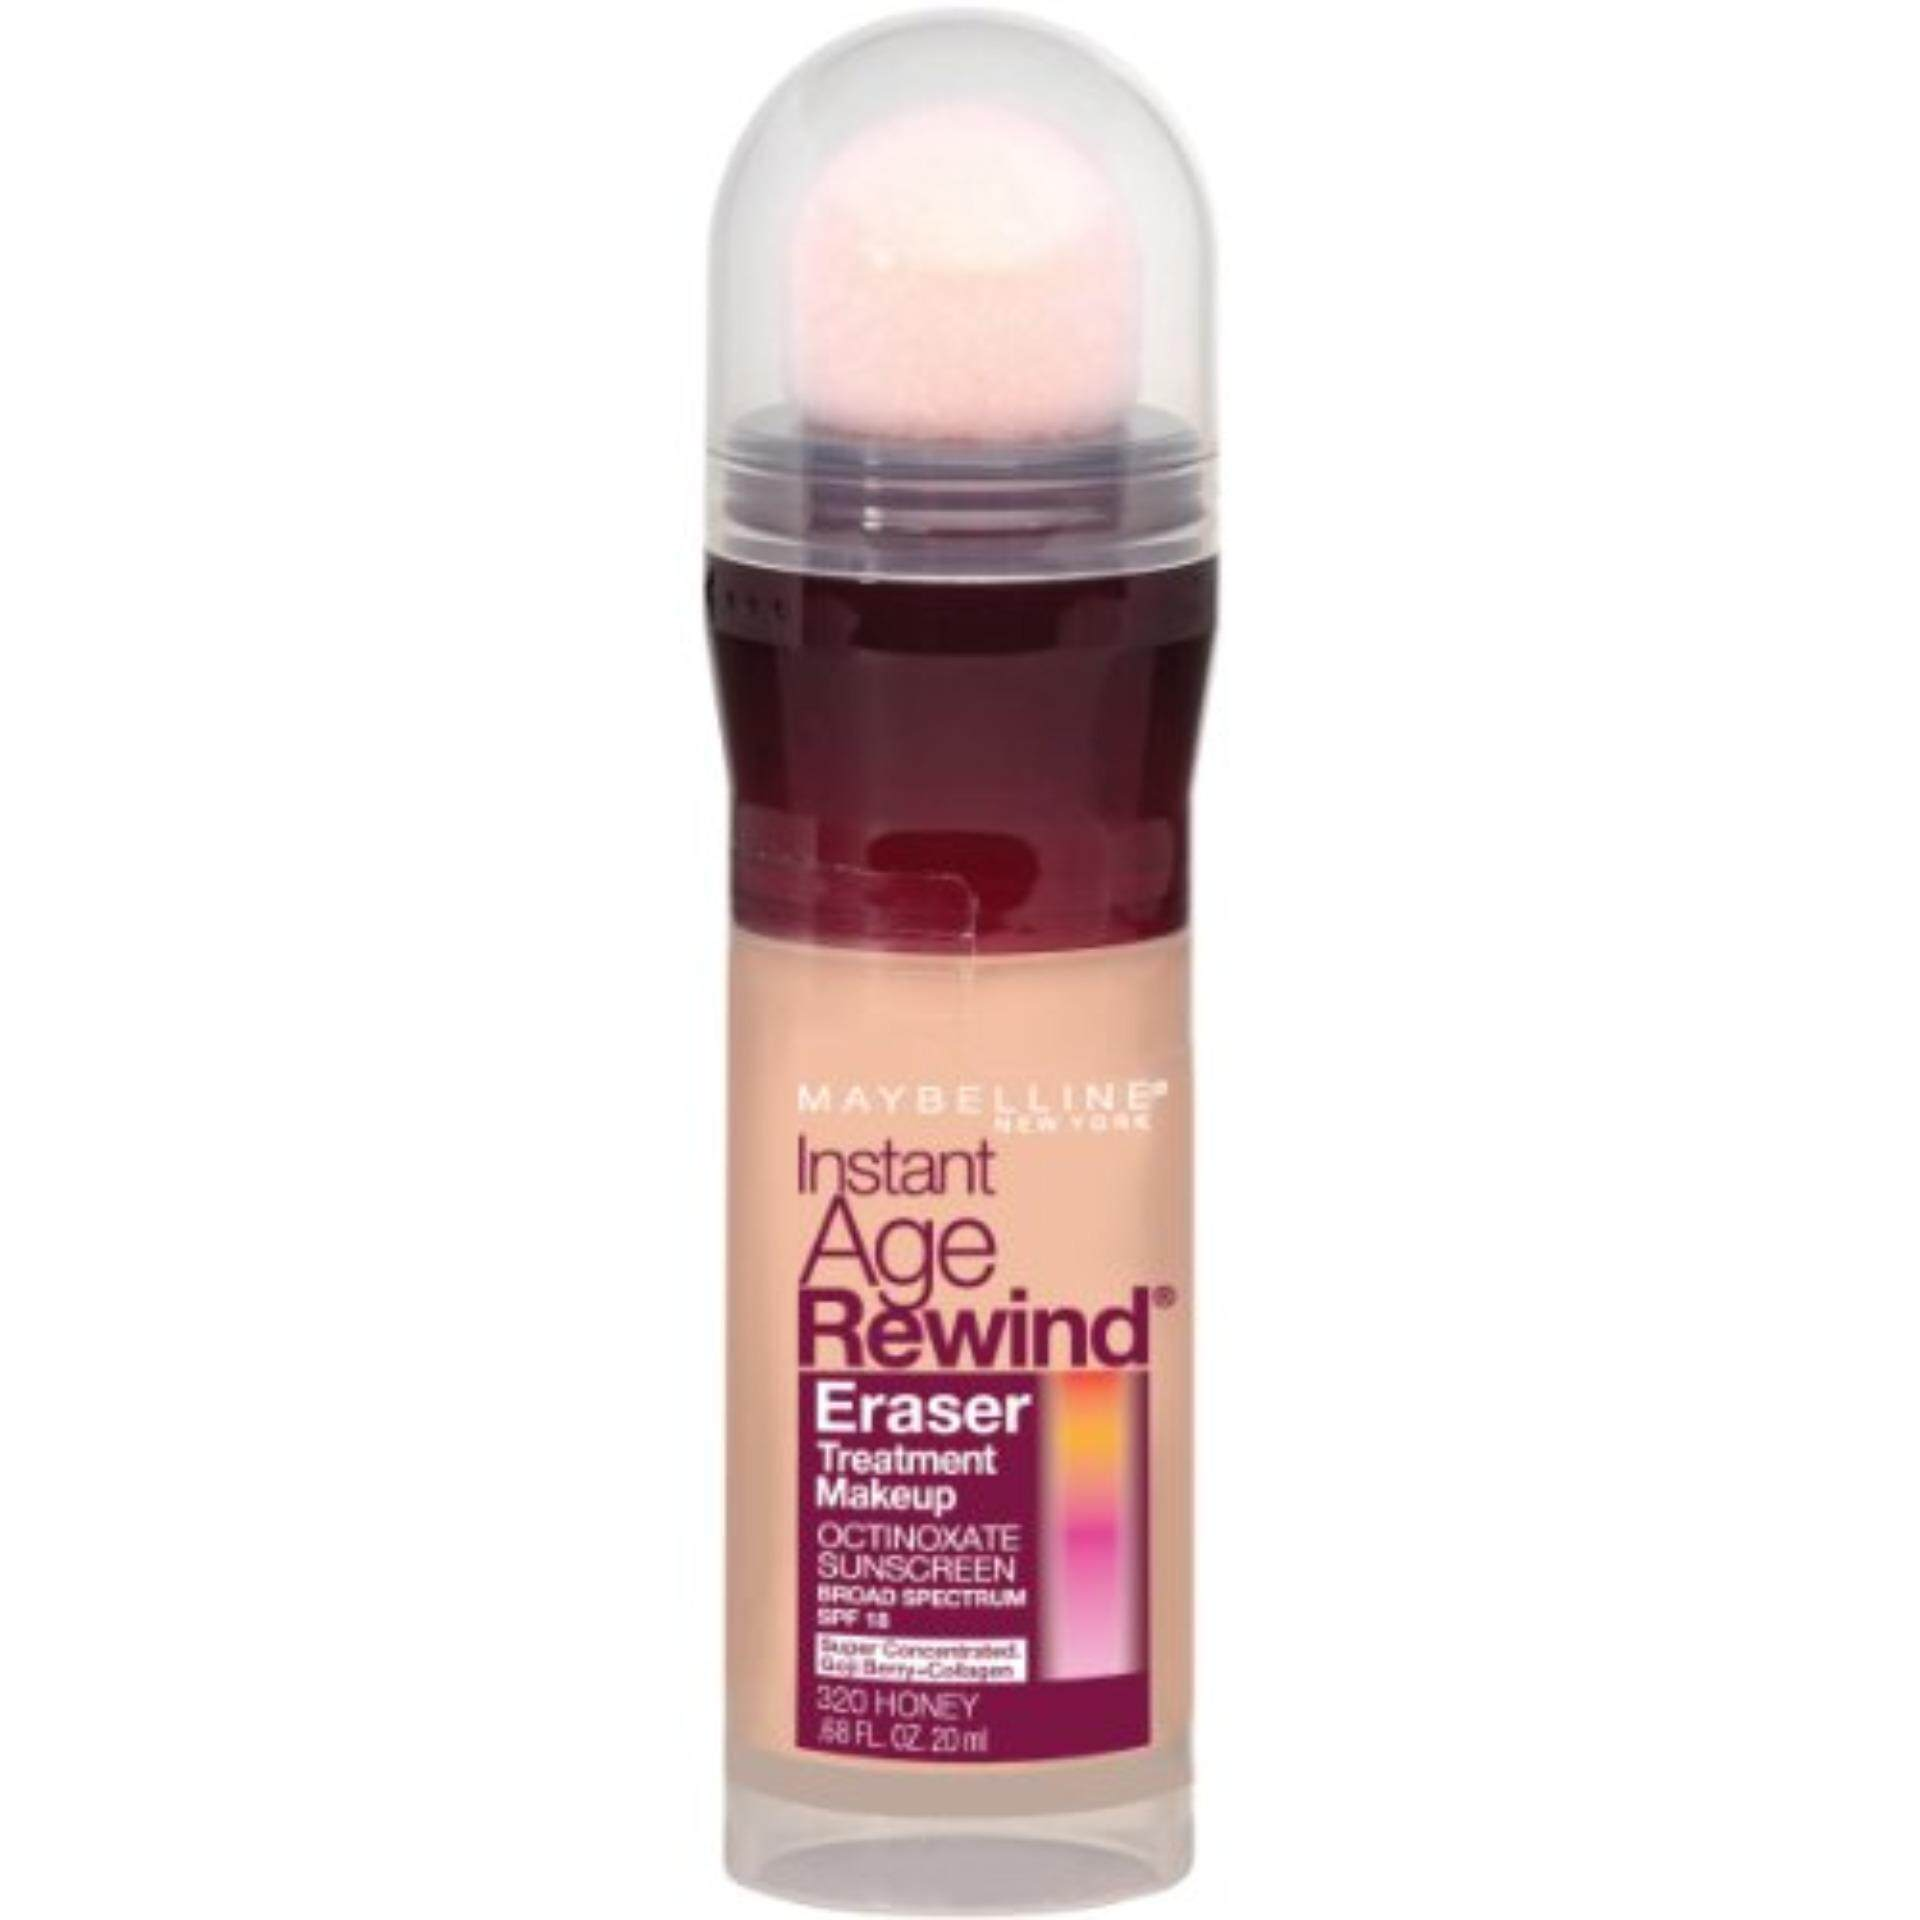 Sell 2 Unit Maybelline Cheapest Best Quality My Store Two Cake Bedak Pcs Myr 53